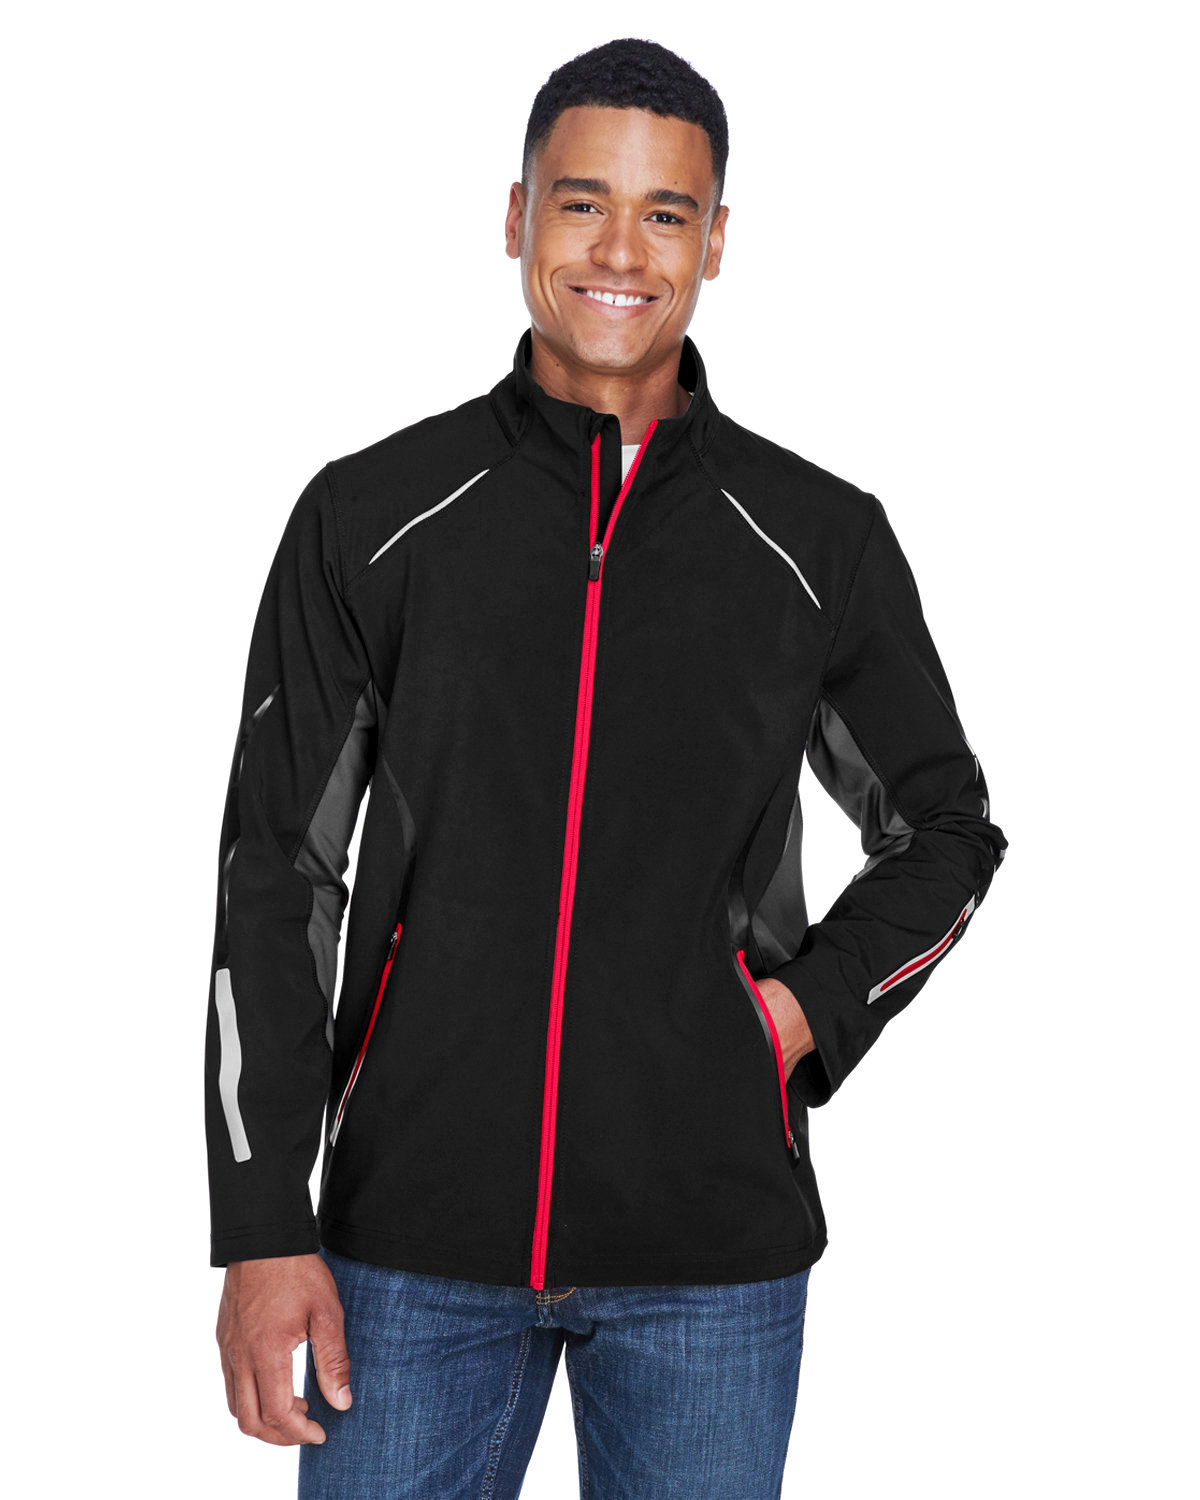 North End Men's Pursuit Three-Layer Light Bonded Hybrid Soft Shell Jacket with Laser Perforation BLACK/ OLYM RED